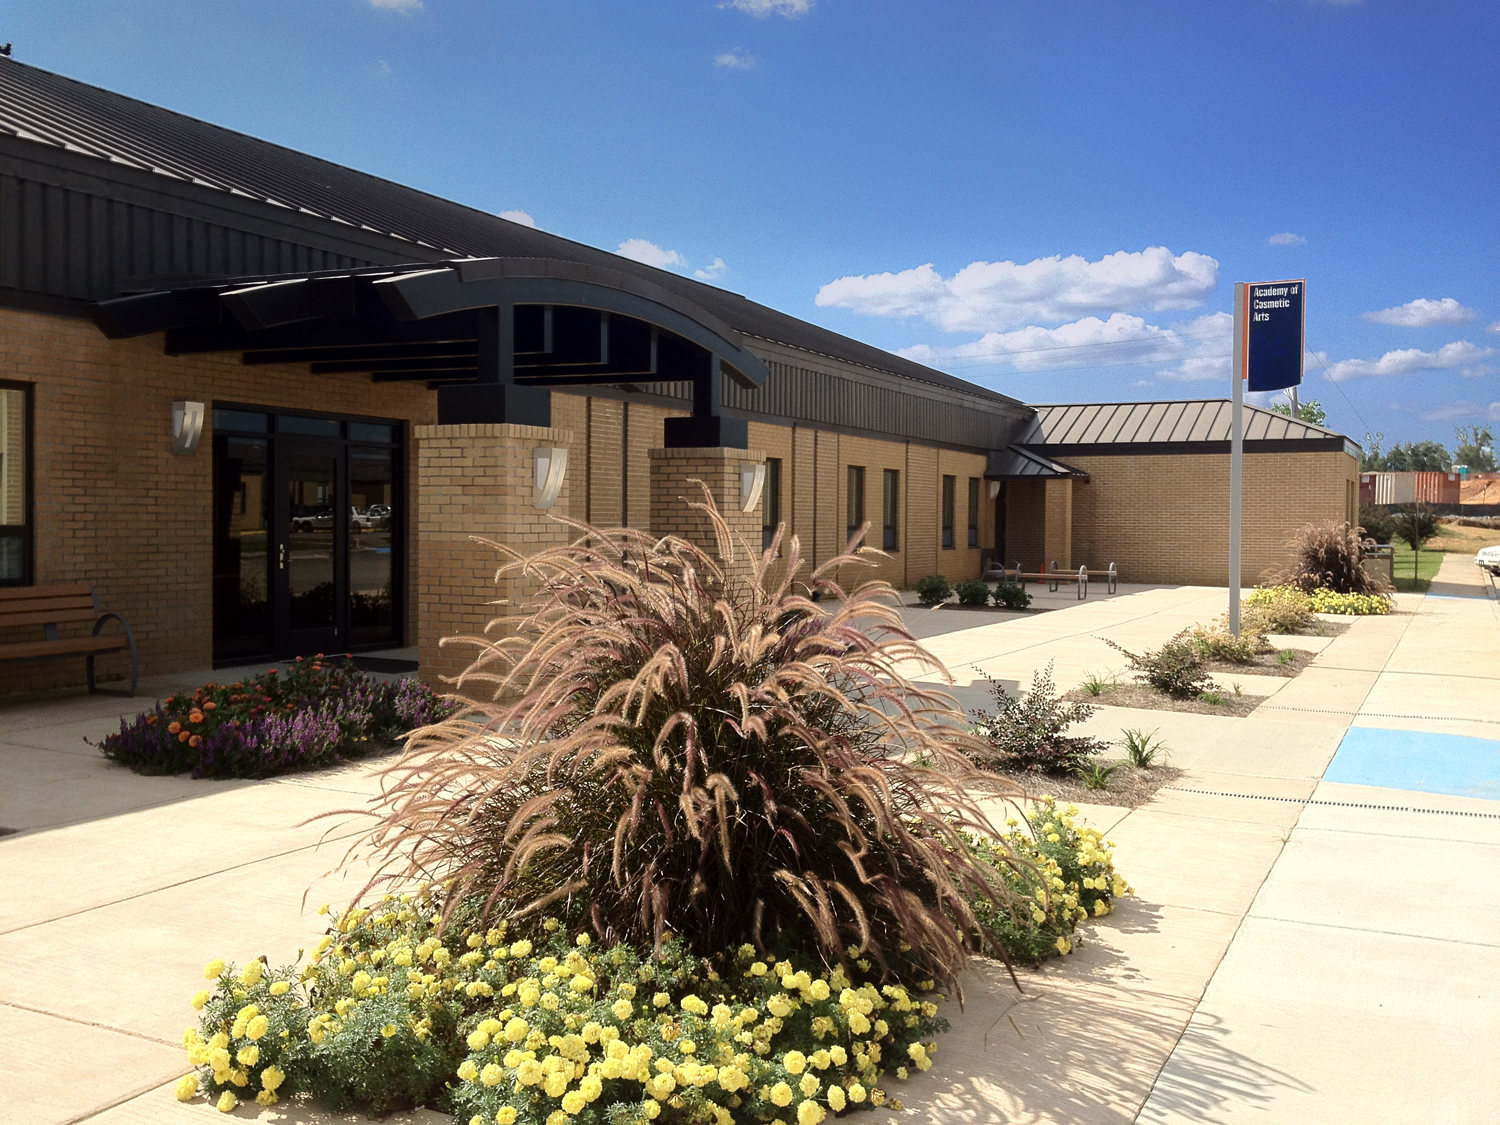 New Entrance  | Academy of Cosmetic Arts, Wallace State Community College